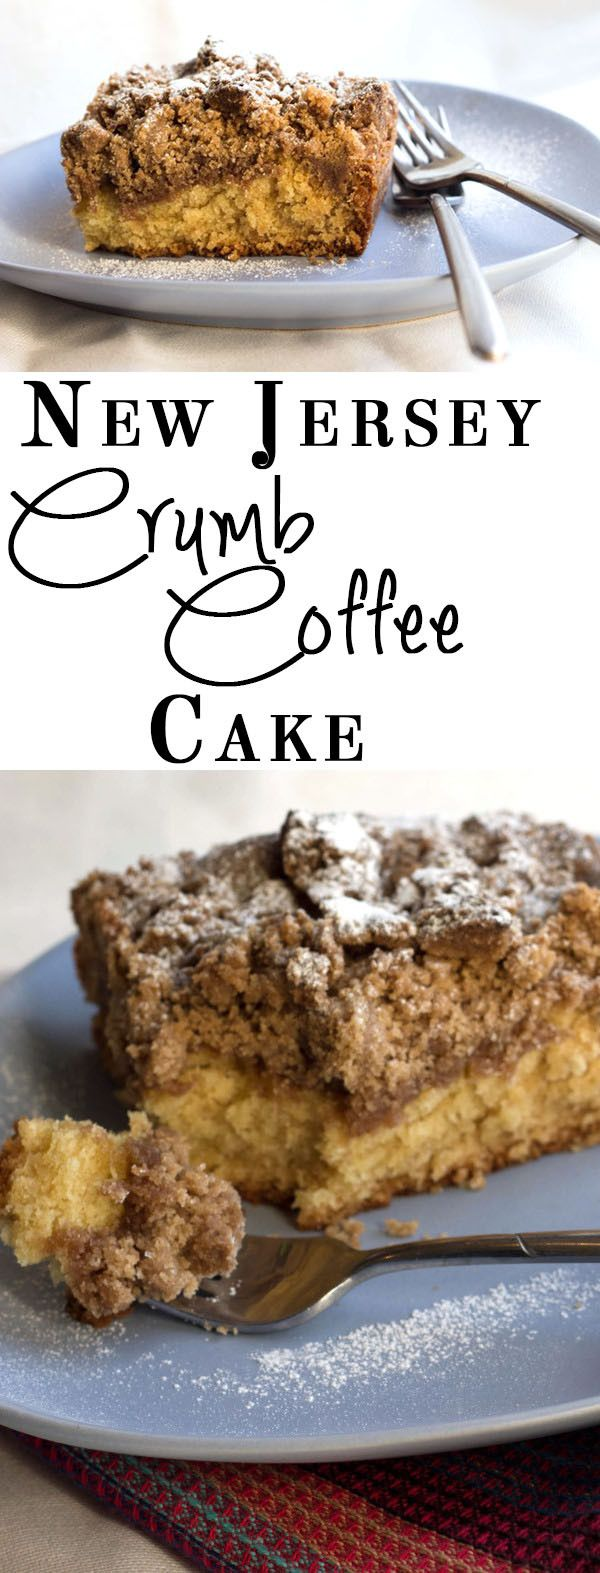 ... Cakes, Erren Kitchens, Crumb Coffee Cakes, Cakes Tops, Coffee Cake